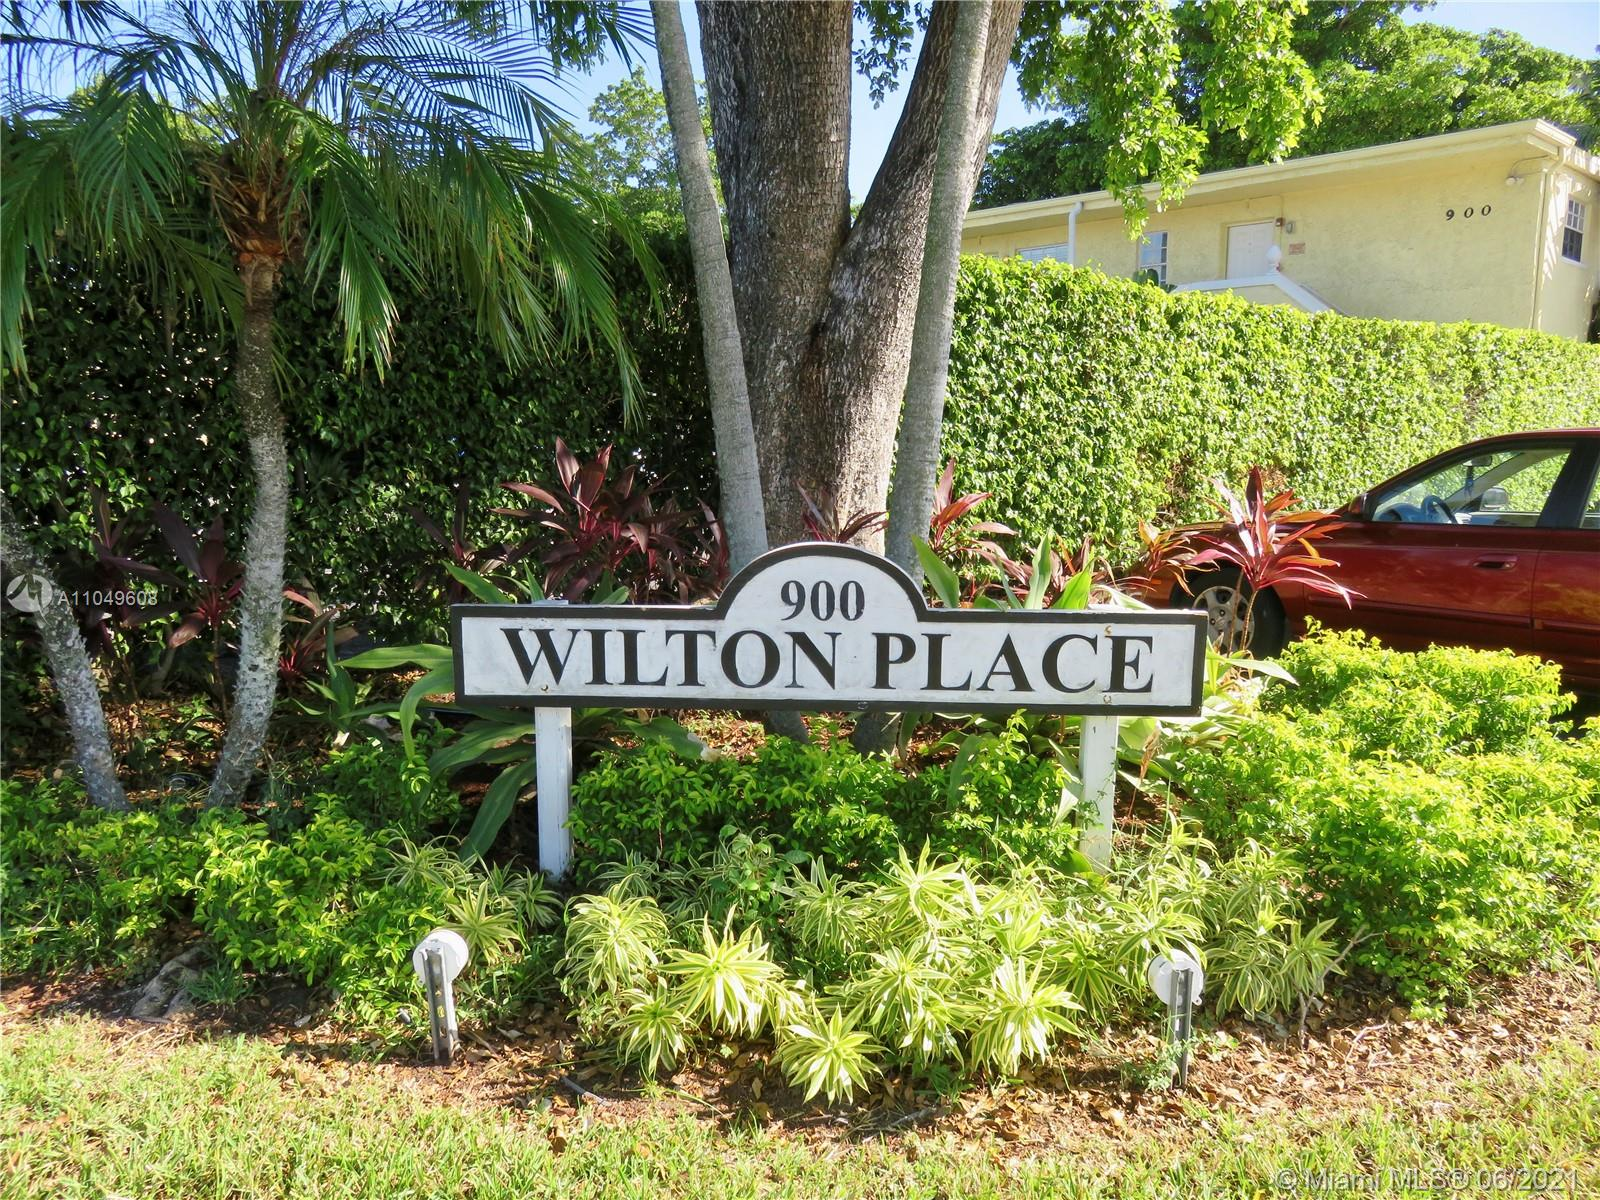 MUST SEE THIS BEAUTIFUL 2-BEDROOMS AND 1-BATHROOM INCOME PROPERTY APARTMENT IN DESIRABLE WILTON MANORS! WALKING DISTANCE TO STARBUCKS, DUNKIN DONUTS, PUBLIX, & NIGHTLIFE - RIGHT IN THE HEART OF WILTON MANORS ENTERTAINMENT DISTRICT! AMENITIES INCLUDE KITCHEN APPLIANCES, TILE FLOORS, HIGH-IMPACT WINDOWS, WALK-IN CLOSET, HVAC, WATER HEATER AND REFRIGERATOR. NEED TO ACT QUICKLY AS THIS APARTMENT WILL NOT LAST. CAN LEASE IMMEDIATELY UPON OWNERSHIP.